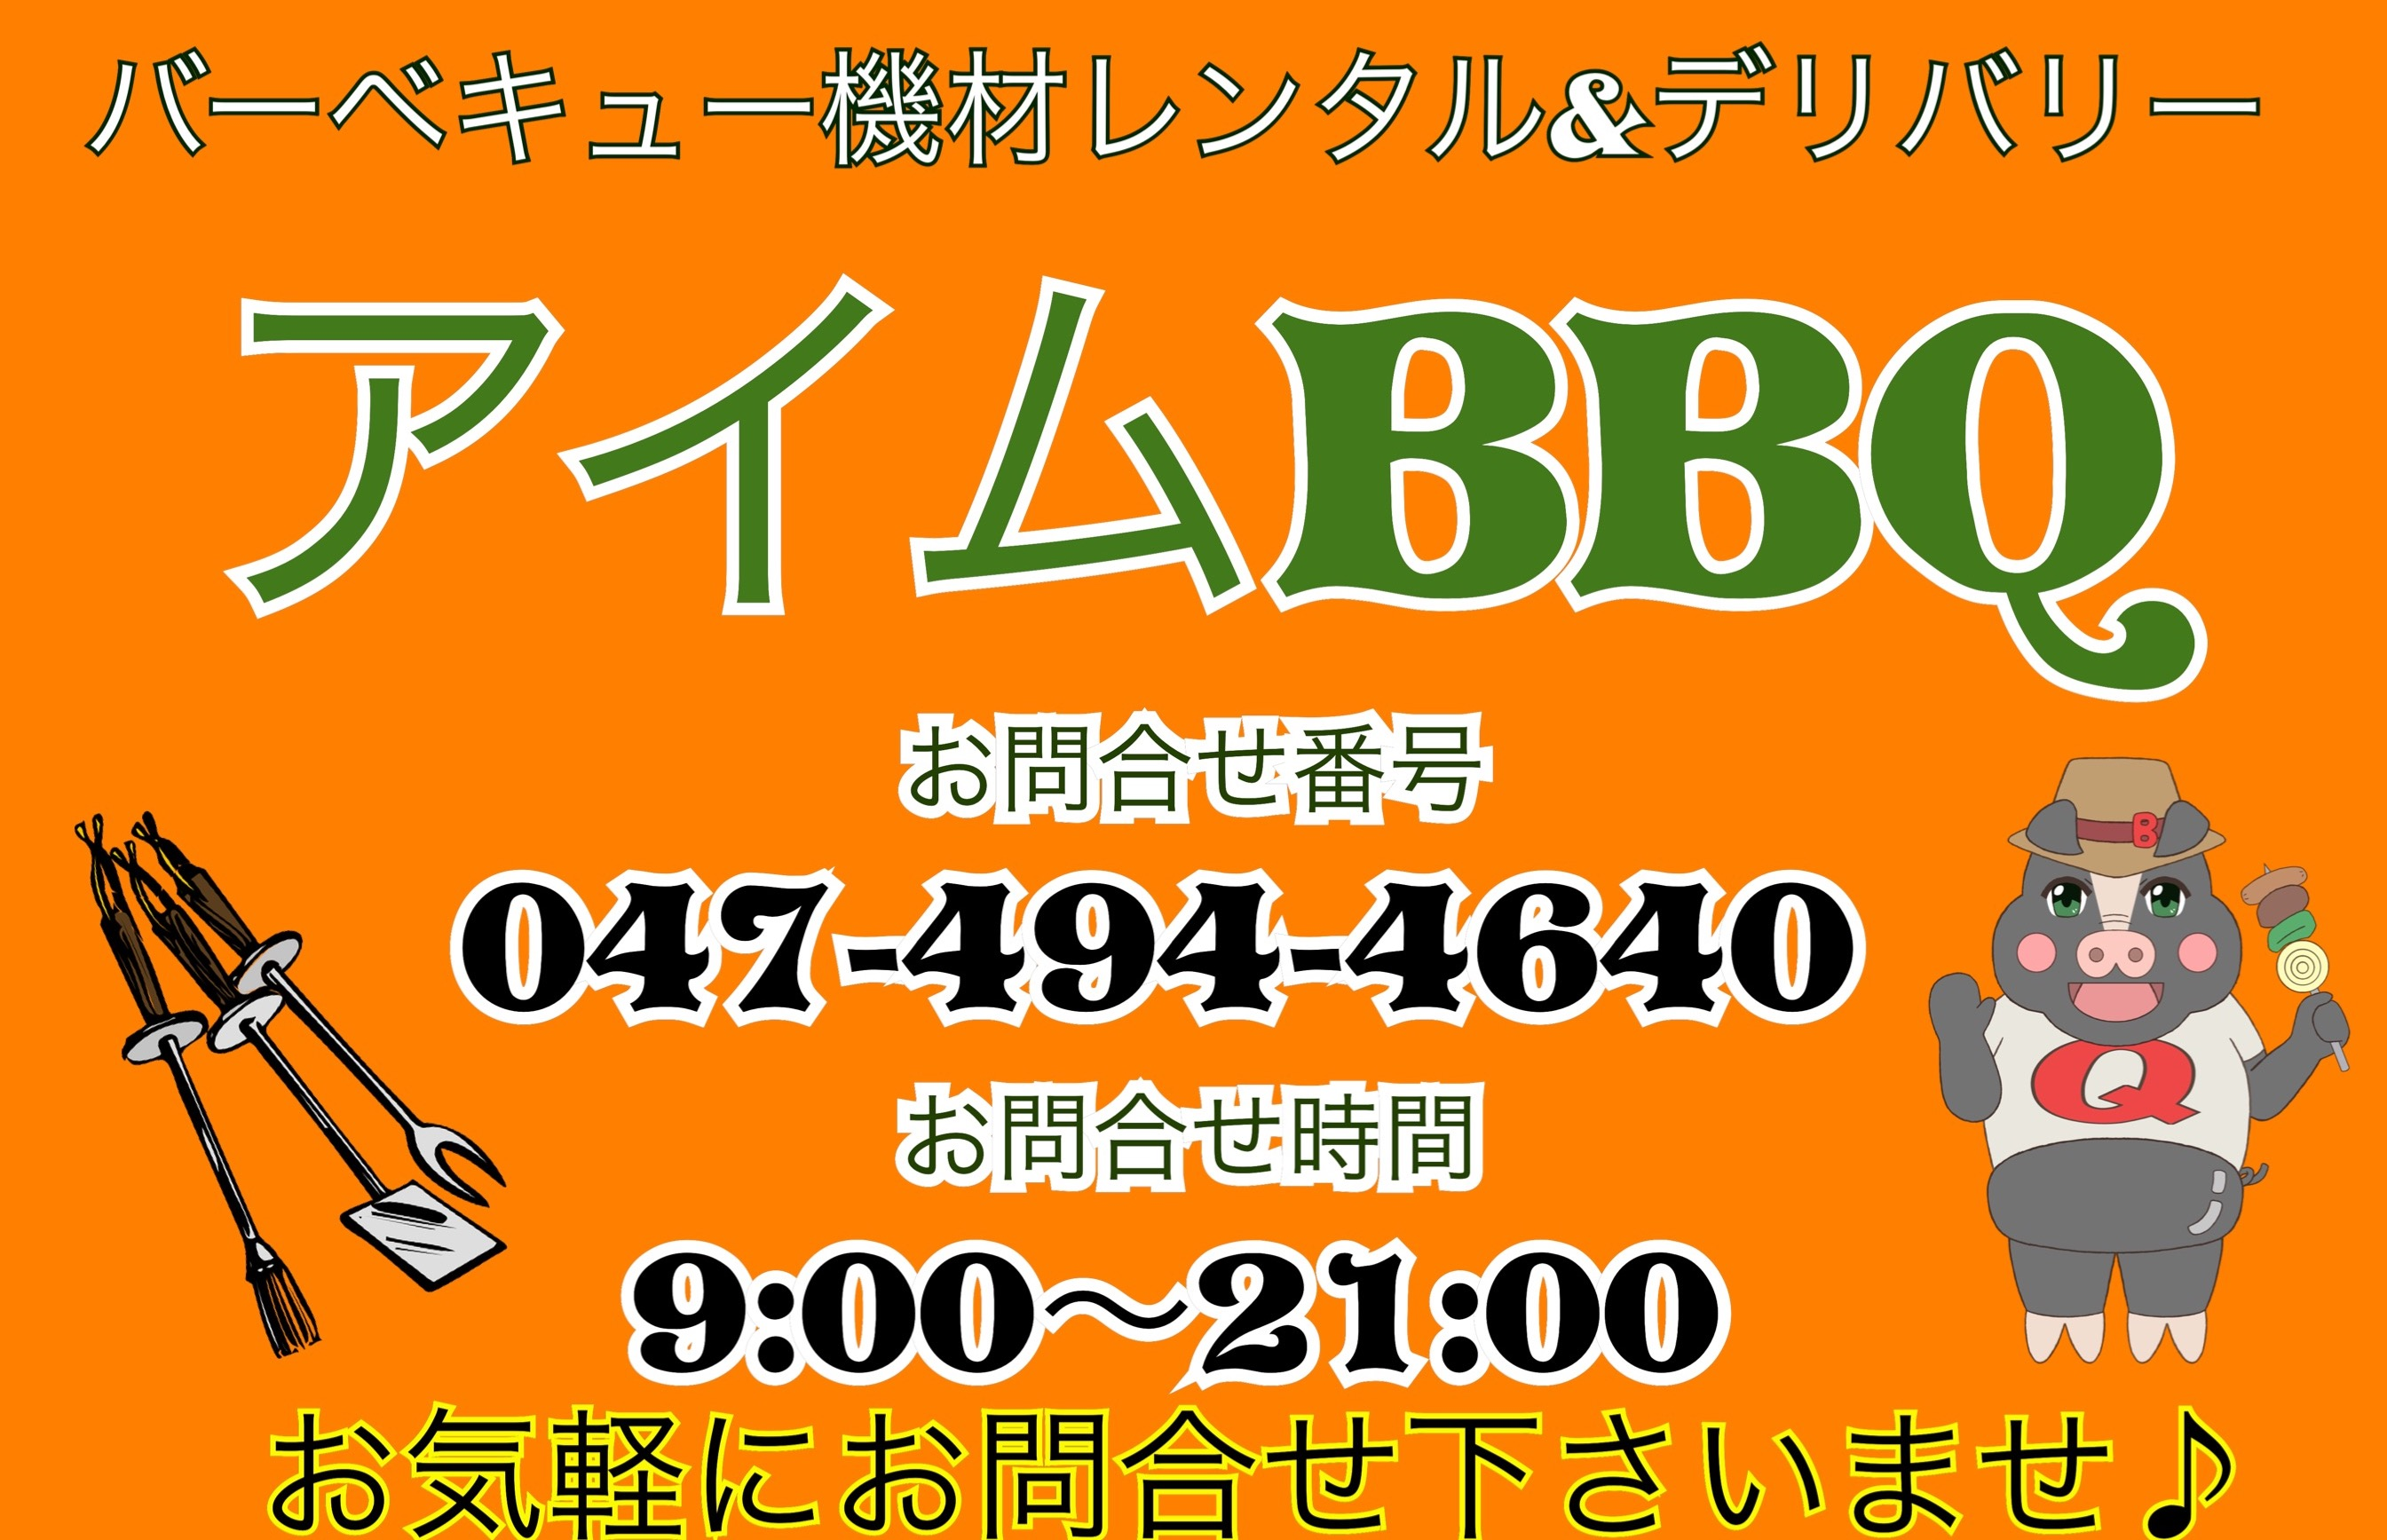 BBQ レンタル